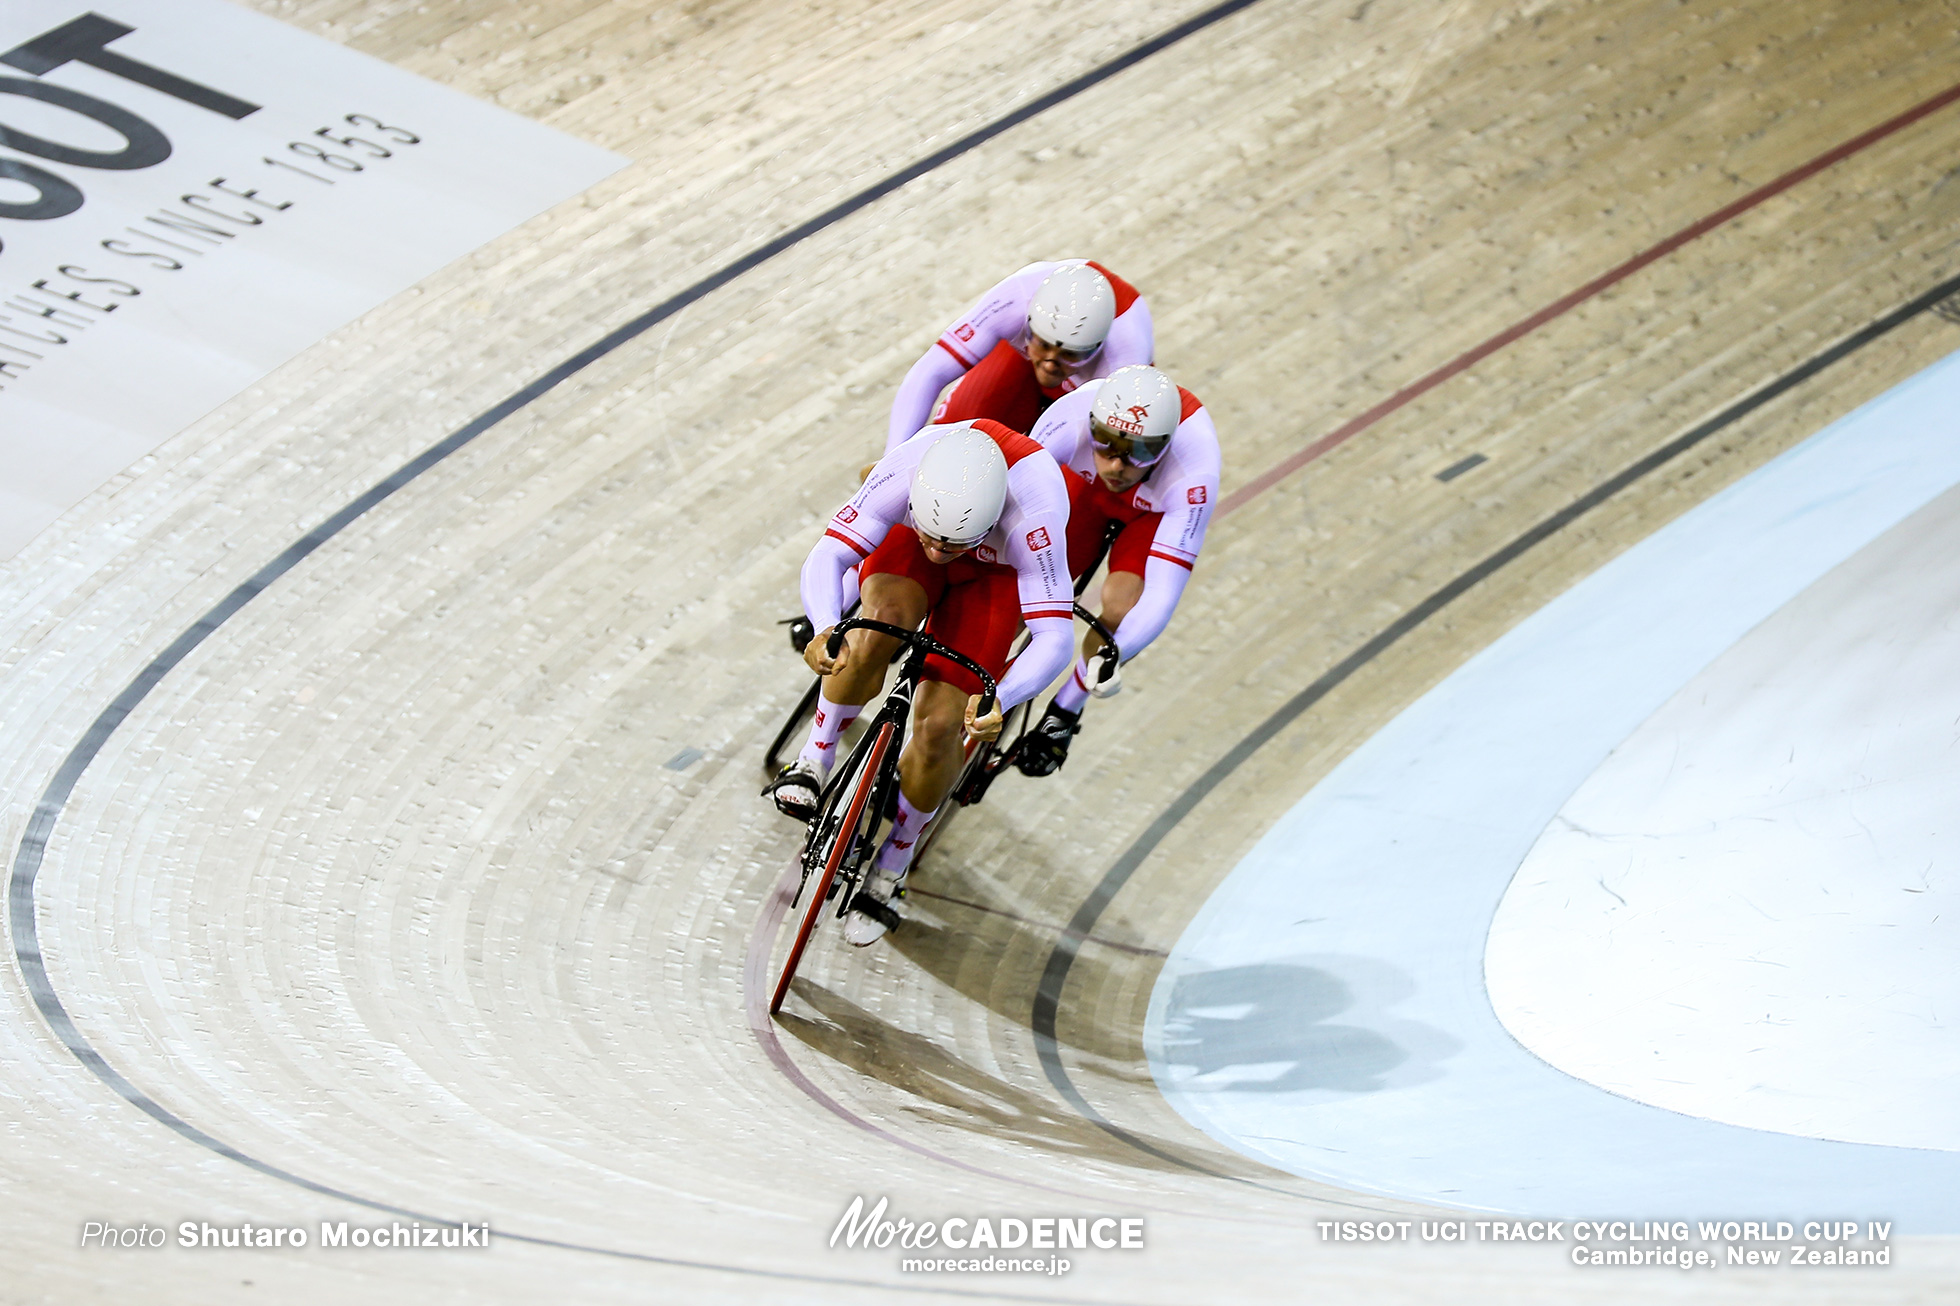 Qualifying / Men's Team Sprint / TISSOT UCI TRACK CYCLING WORLD CUP IV, Cambridge, New Zealand